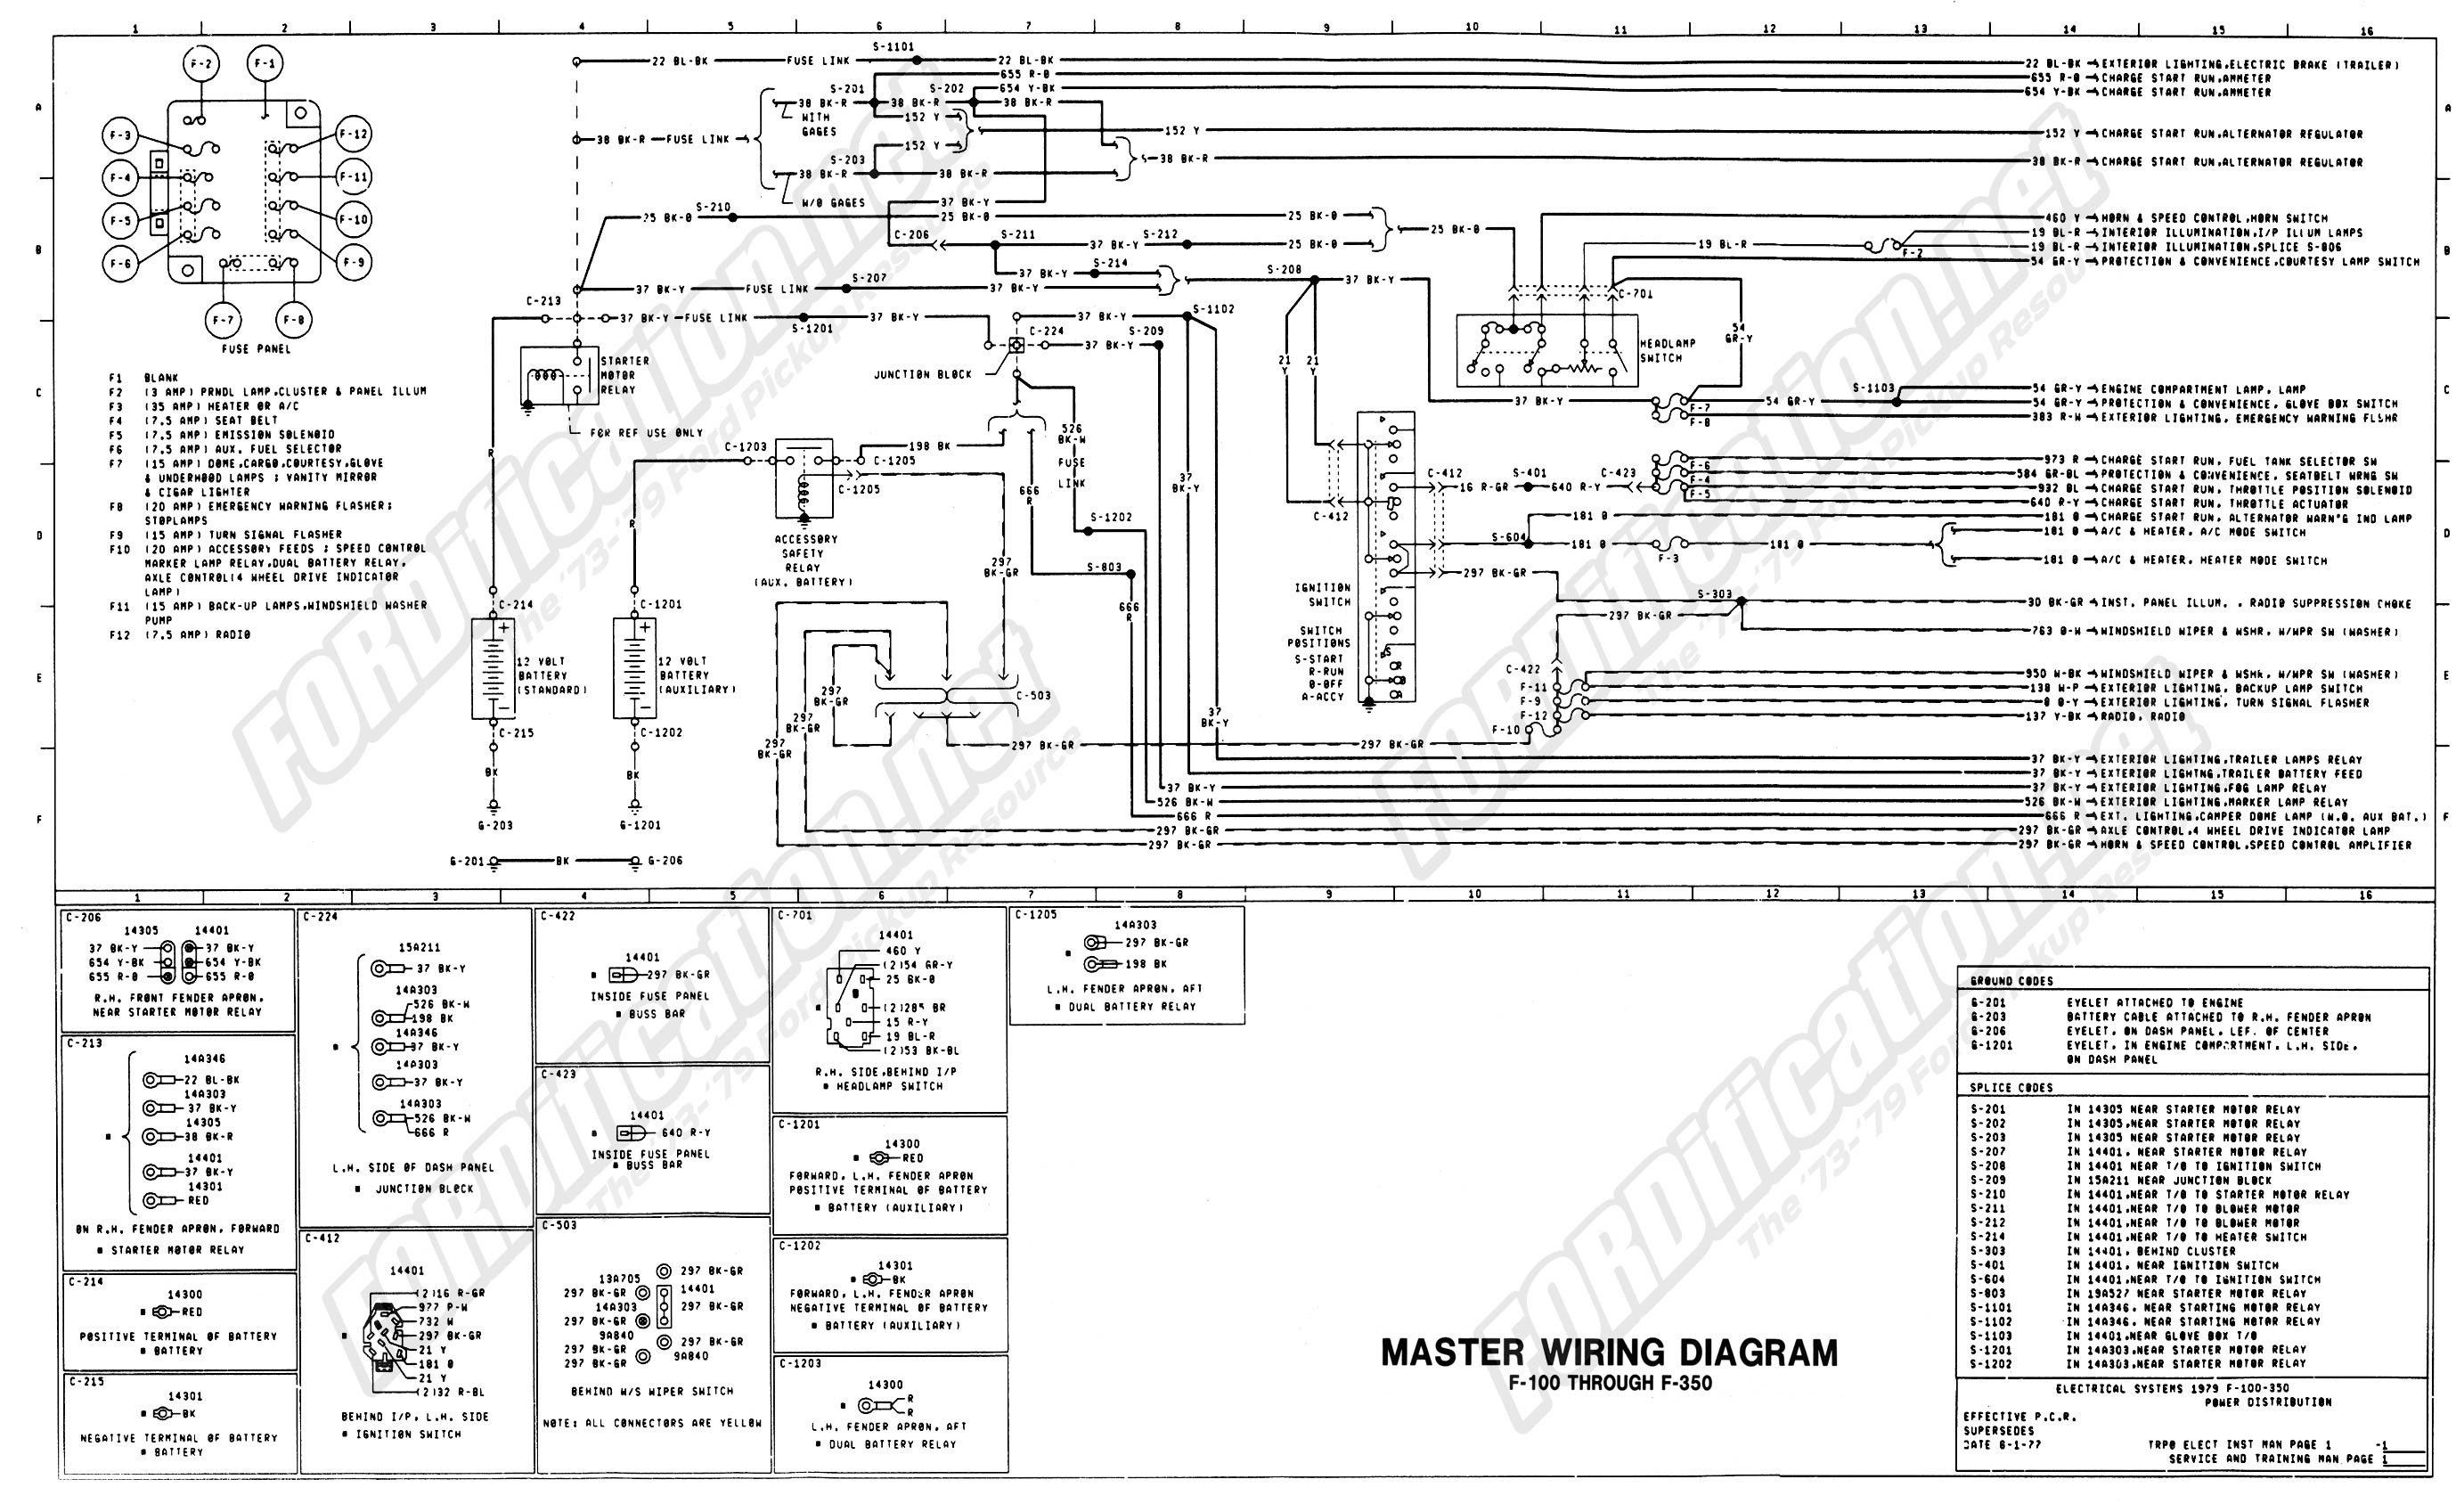 1997 ford Explorer Engine Diagram 79 F150 solenoid Wiring Diagram ford Truck Enthusiasts forums Of 1997 ford Explorer Engine Diagram 1997 ford Ranger 4 0 Spark Plug Wiring Diagram original Wire